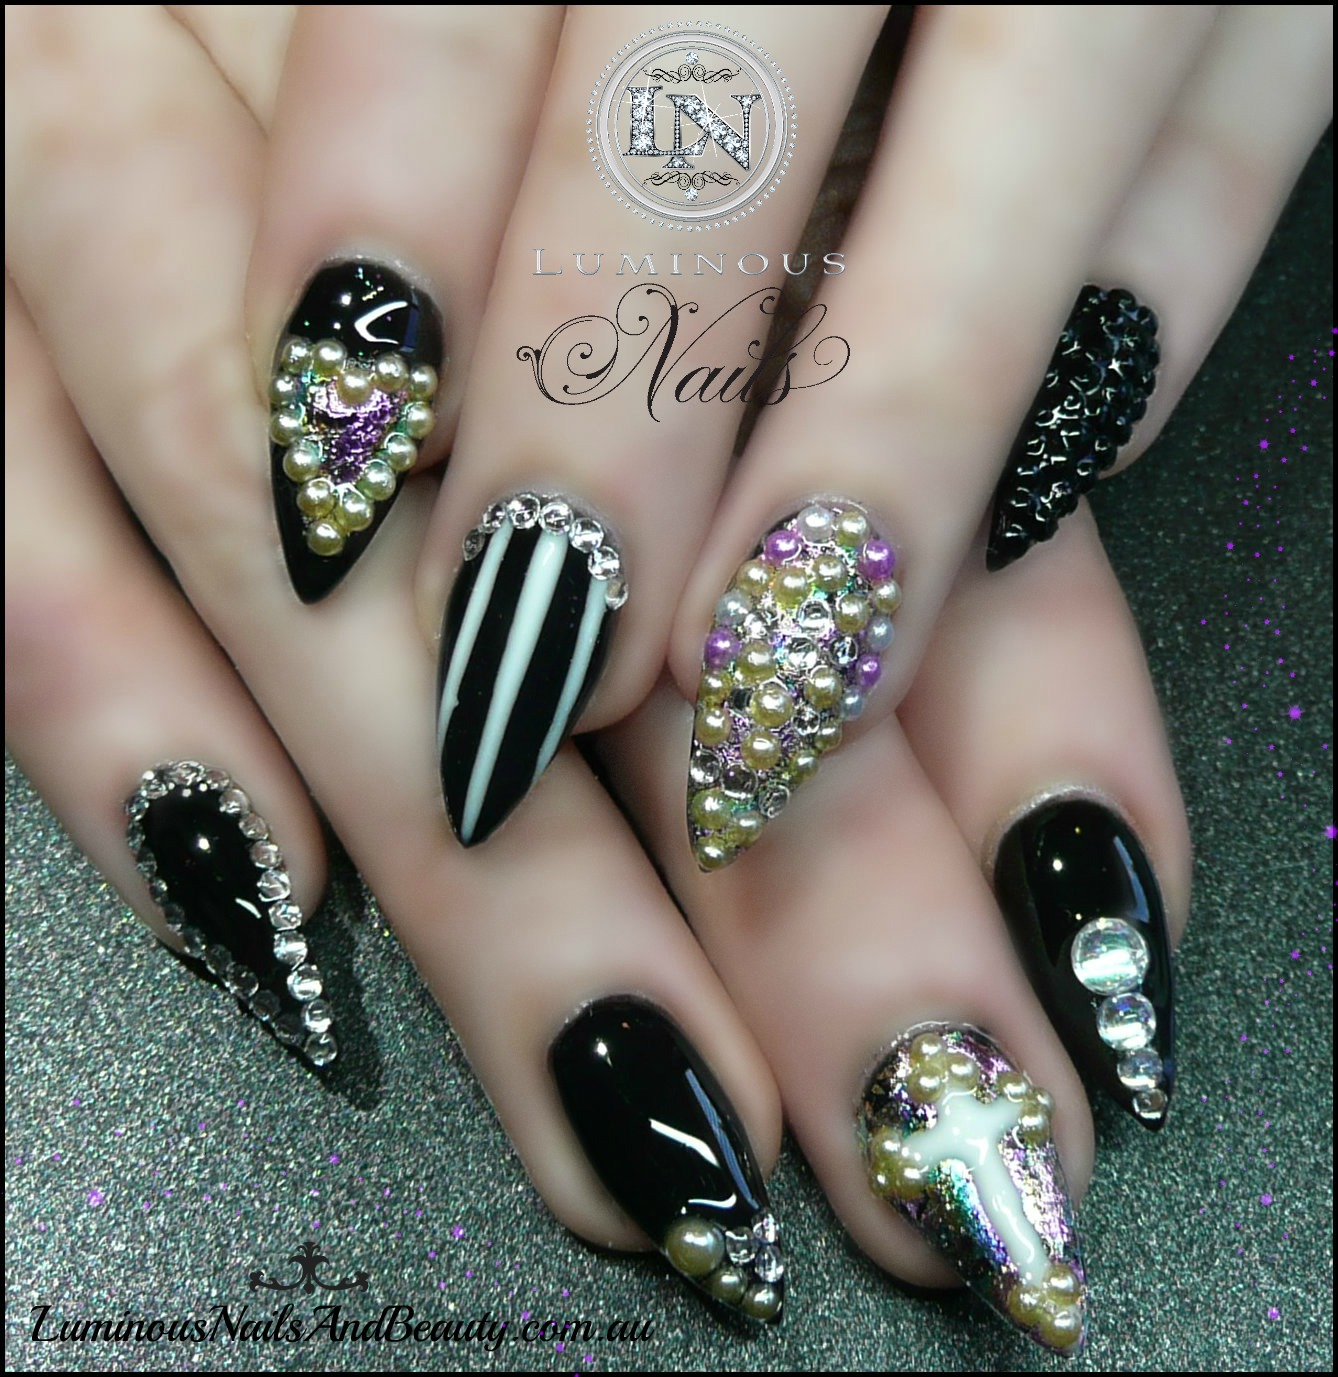 Luminous Nails: Black Pointy Nails with Bling Bling..